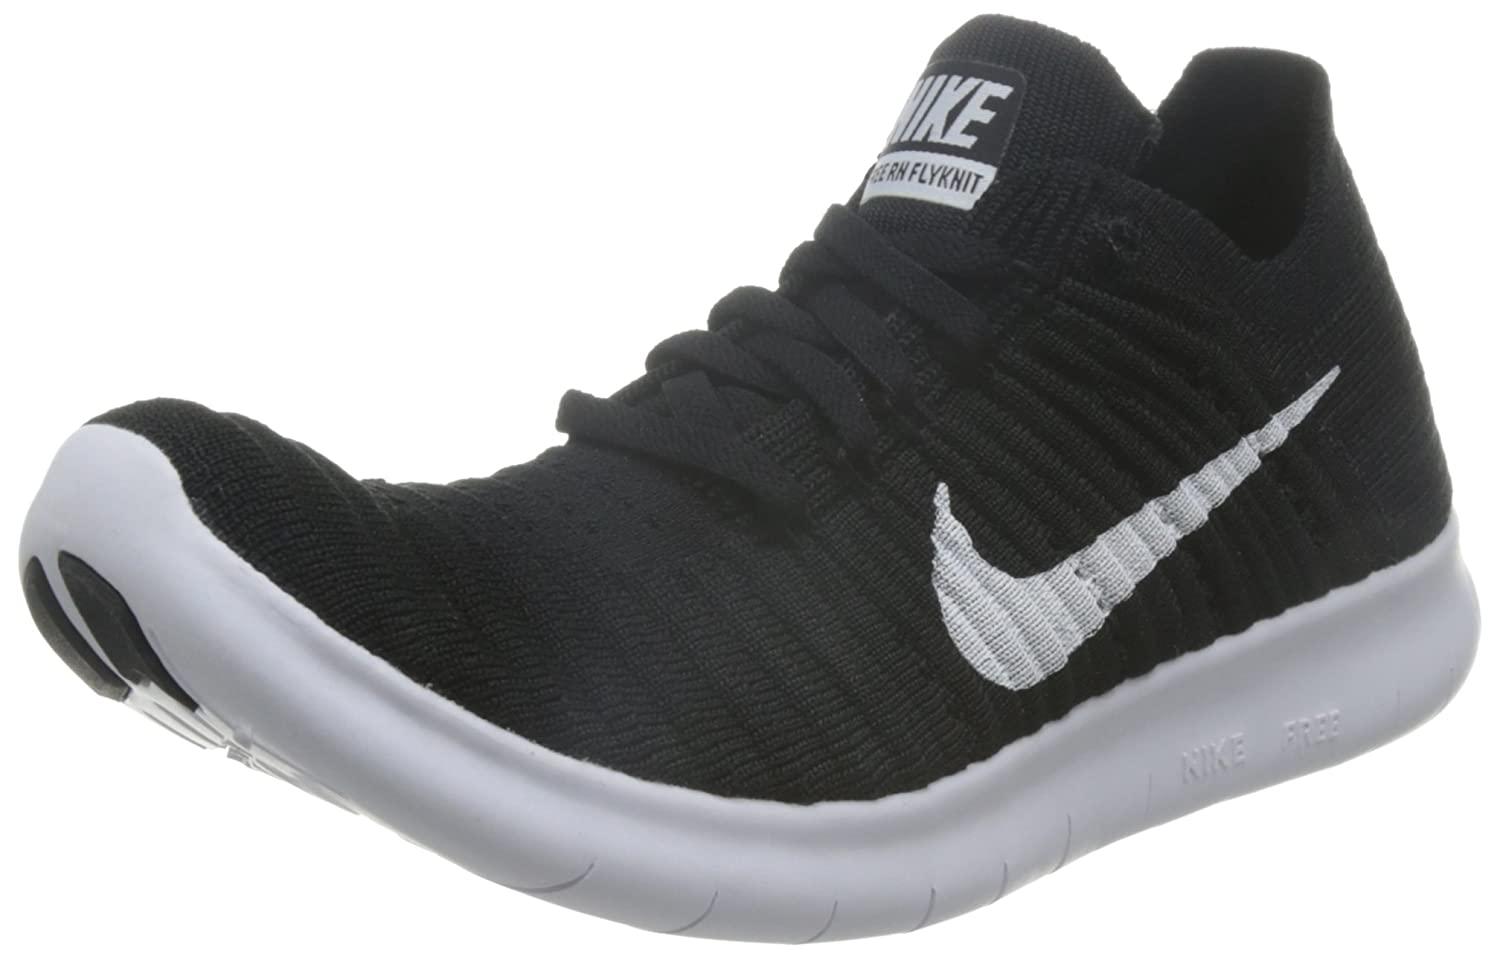 look for d696c c8aec Amazon.com  Nike Free RN Flyknit Womens Black White Running Sneakers   Clothing